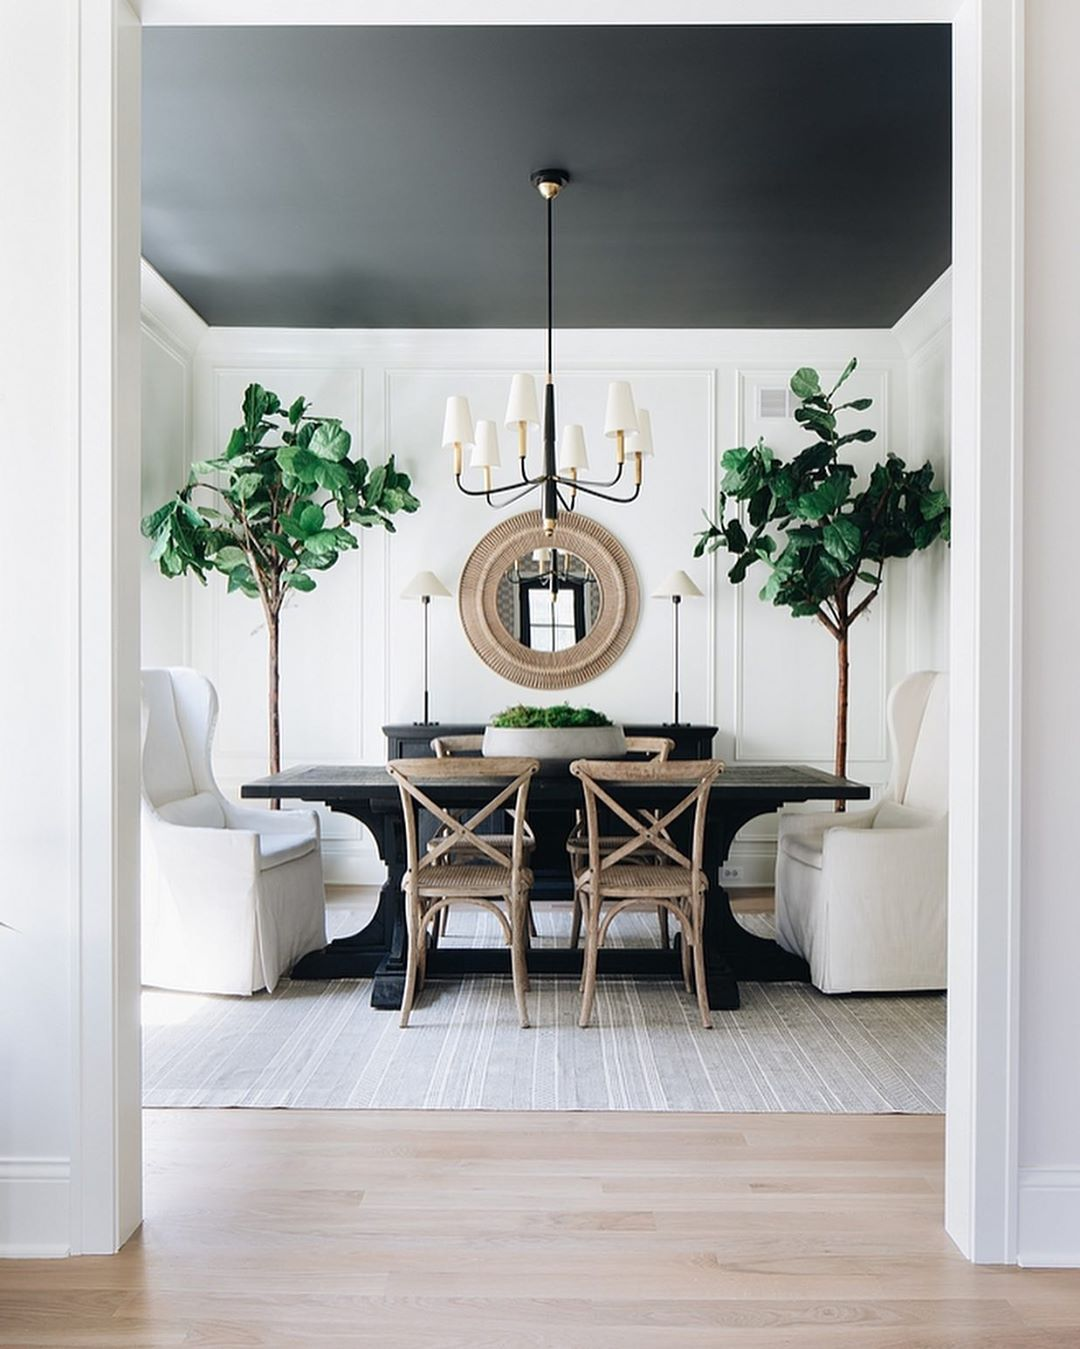 Home Bunch On Instagram Which One Would You Choose Modern Farmhouse Or Traditional S In 2020 Dark Dining Room Black And White Dining Room Farmhouse Dining Room